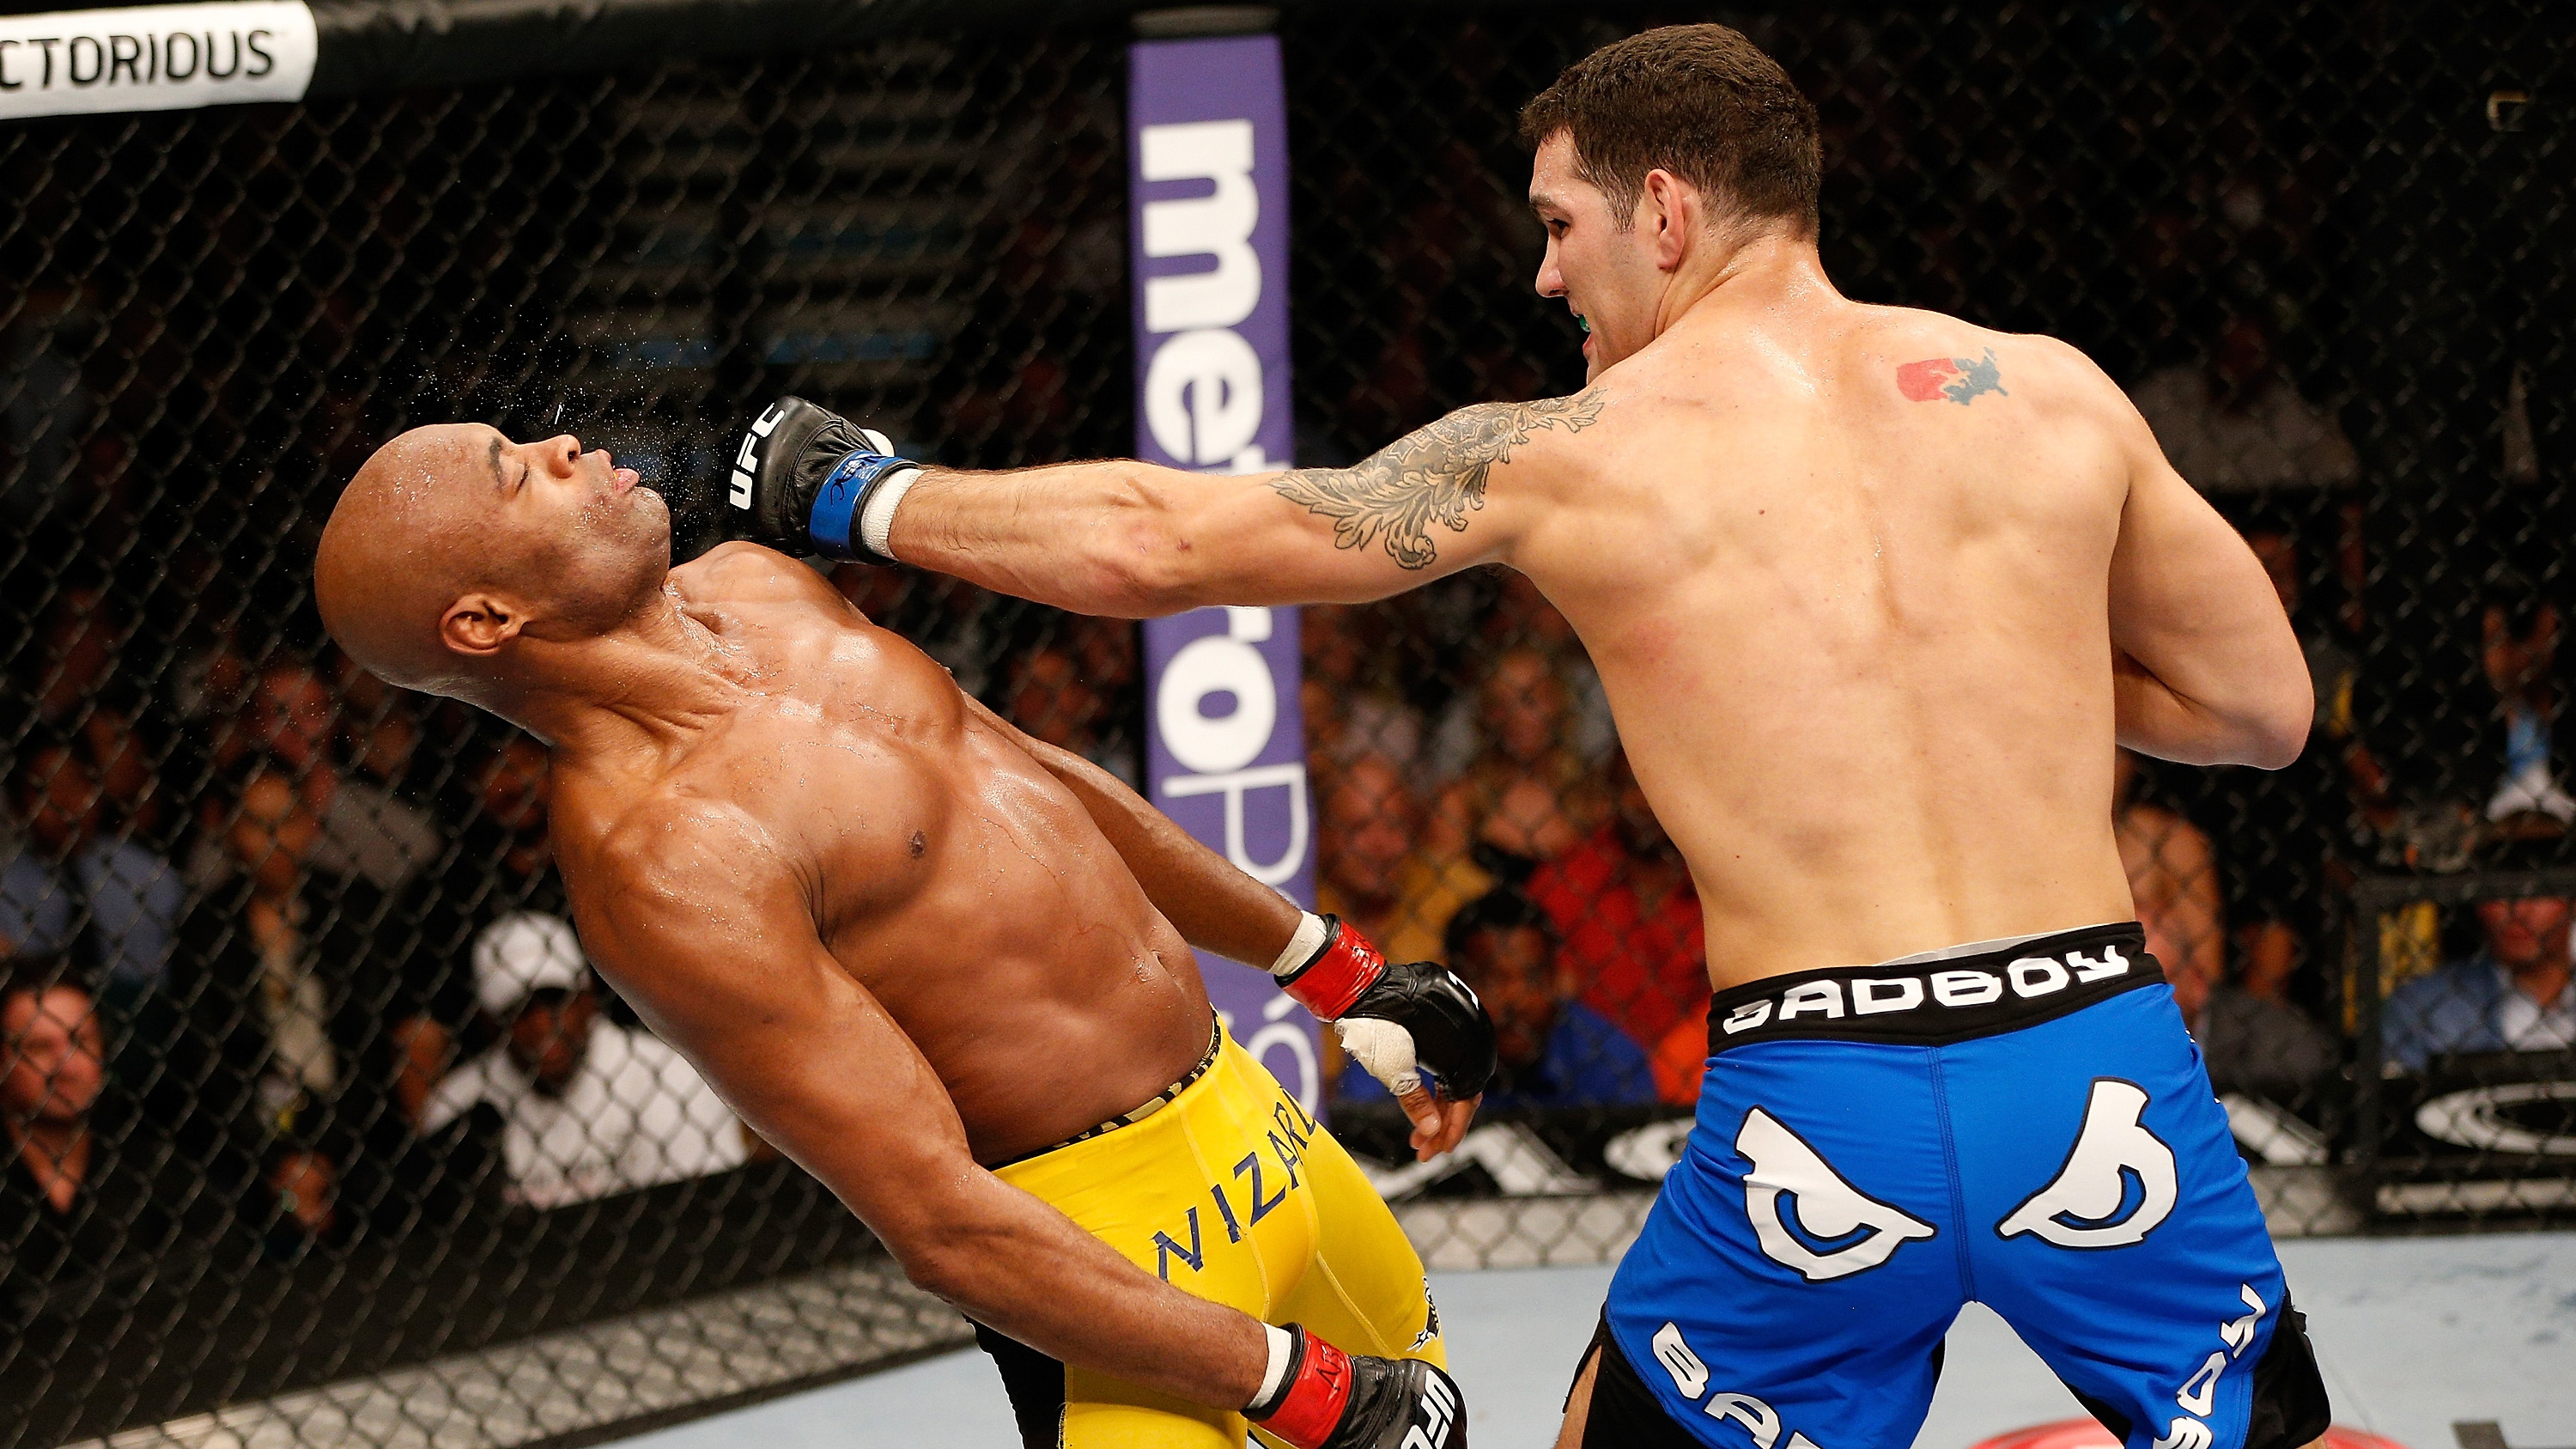 <a href='../fighter/Chris-Weidman'>Chris Weidman</a> punches <a href='../fighter/Anderson-Silva'>Anderson Silva</a> during his upset victory at UFC 162